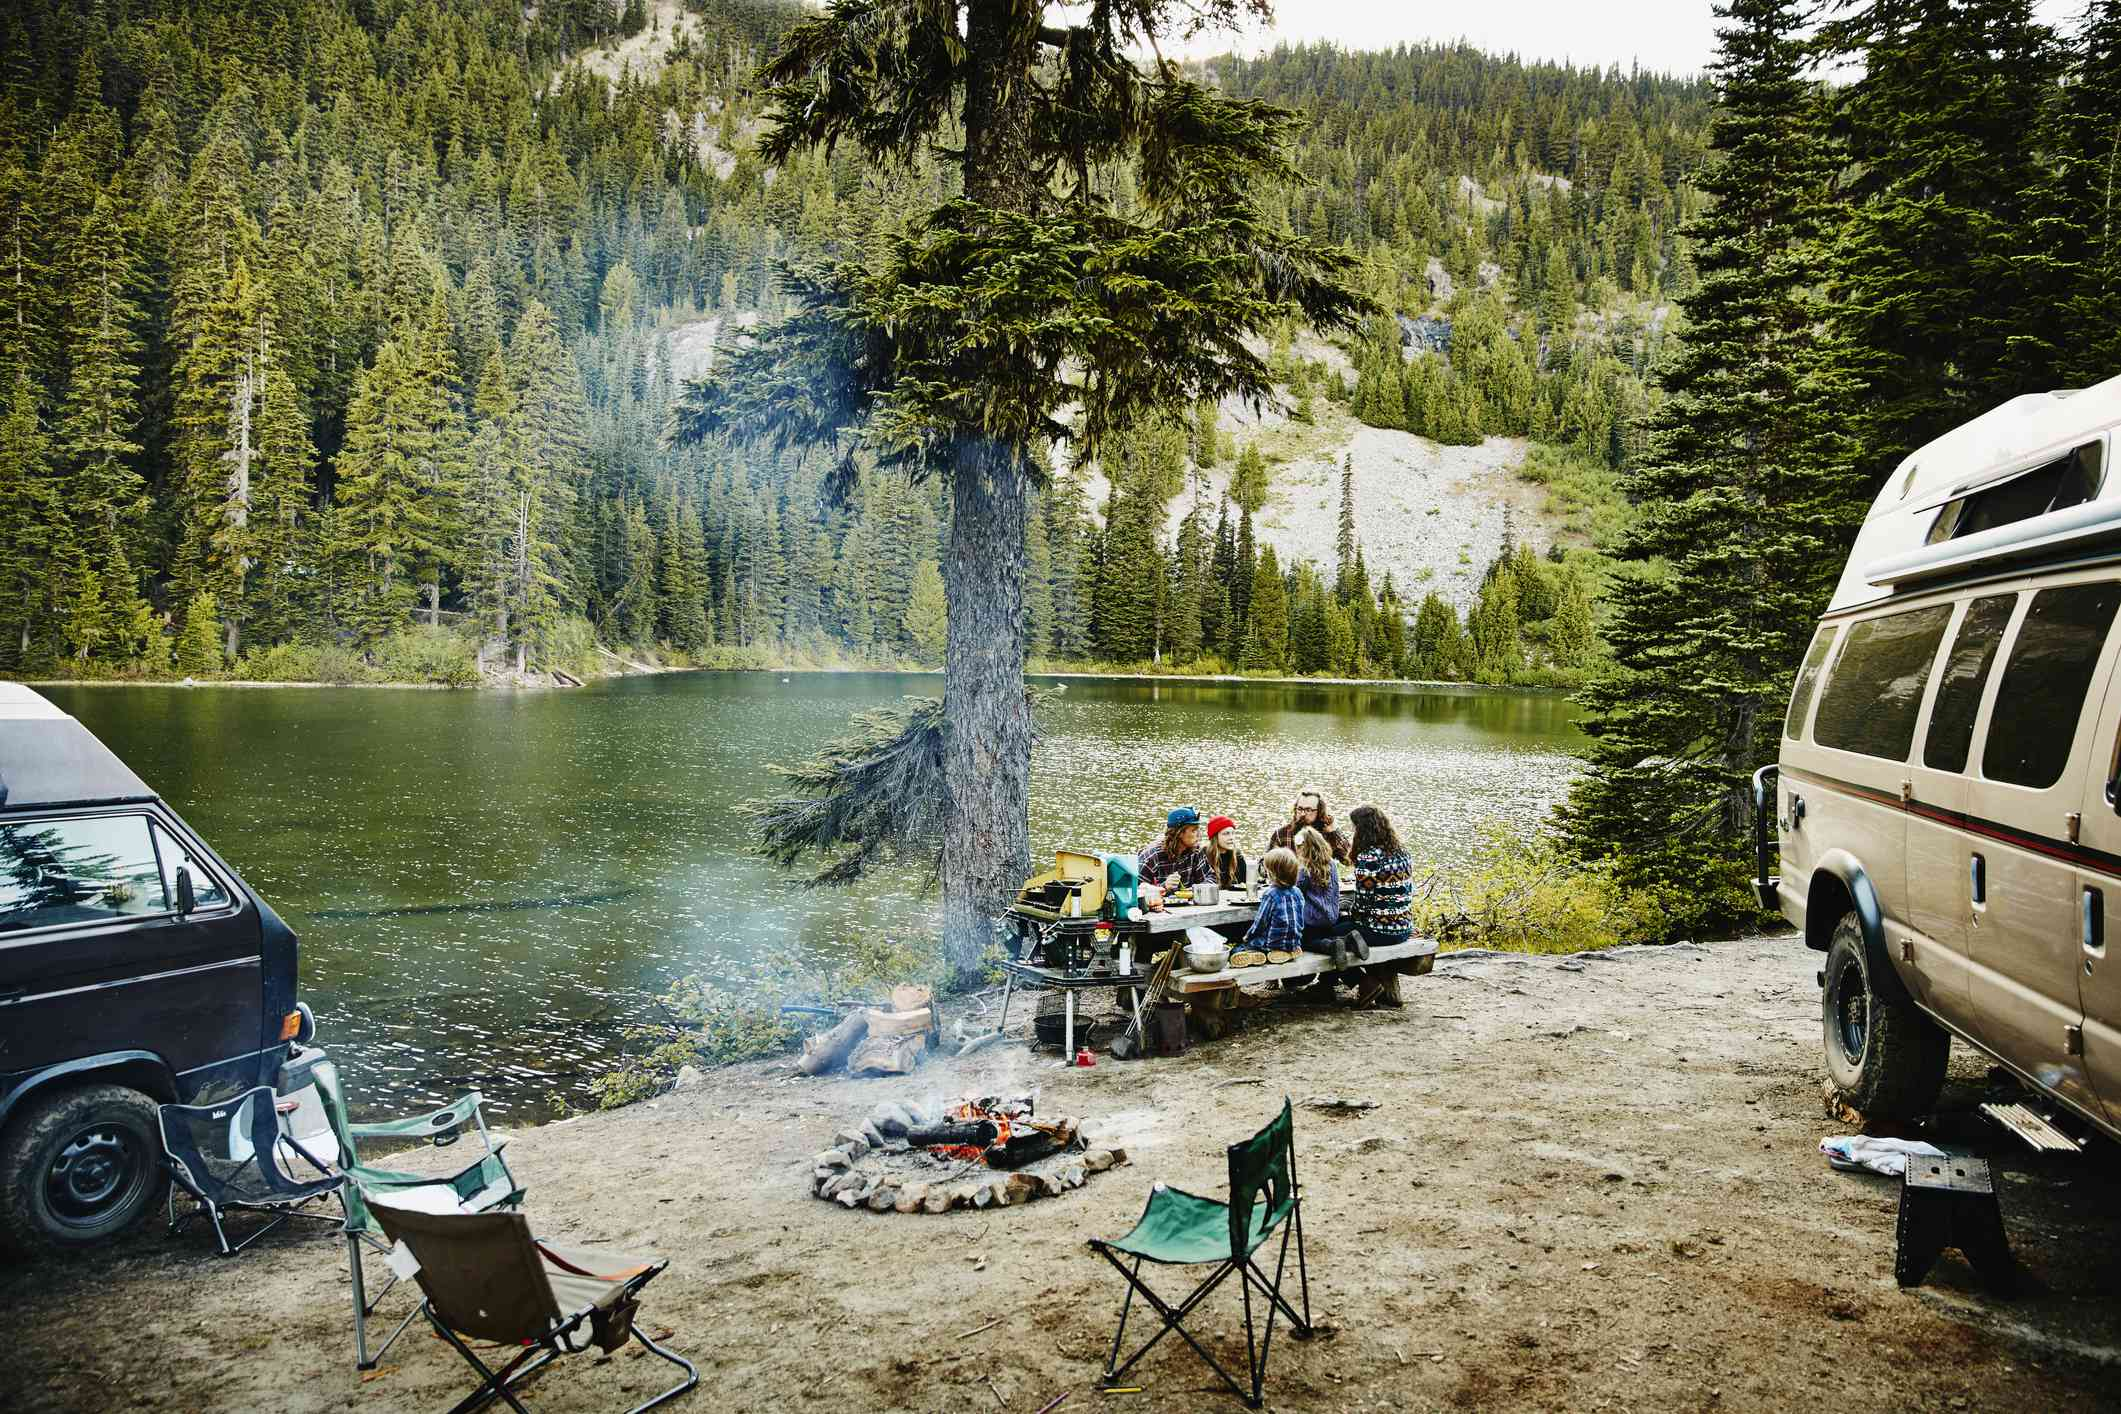 A family sitting at a campsite pinic table with two camping vehicles, and a smoldering fite pick with three foldable lawn chair around it